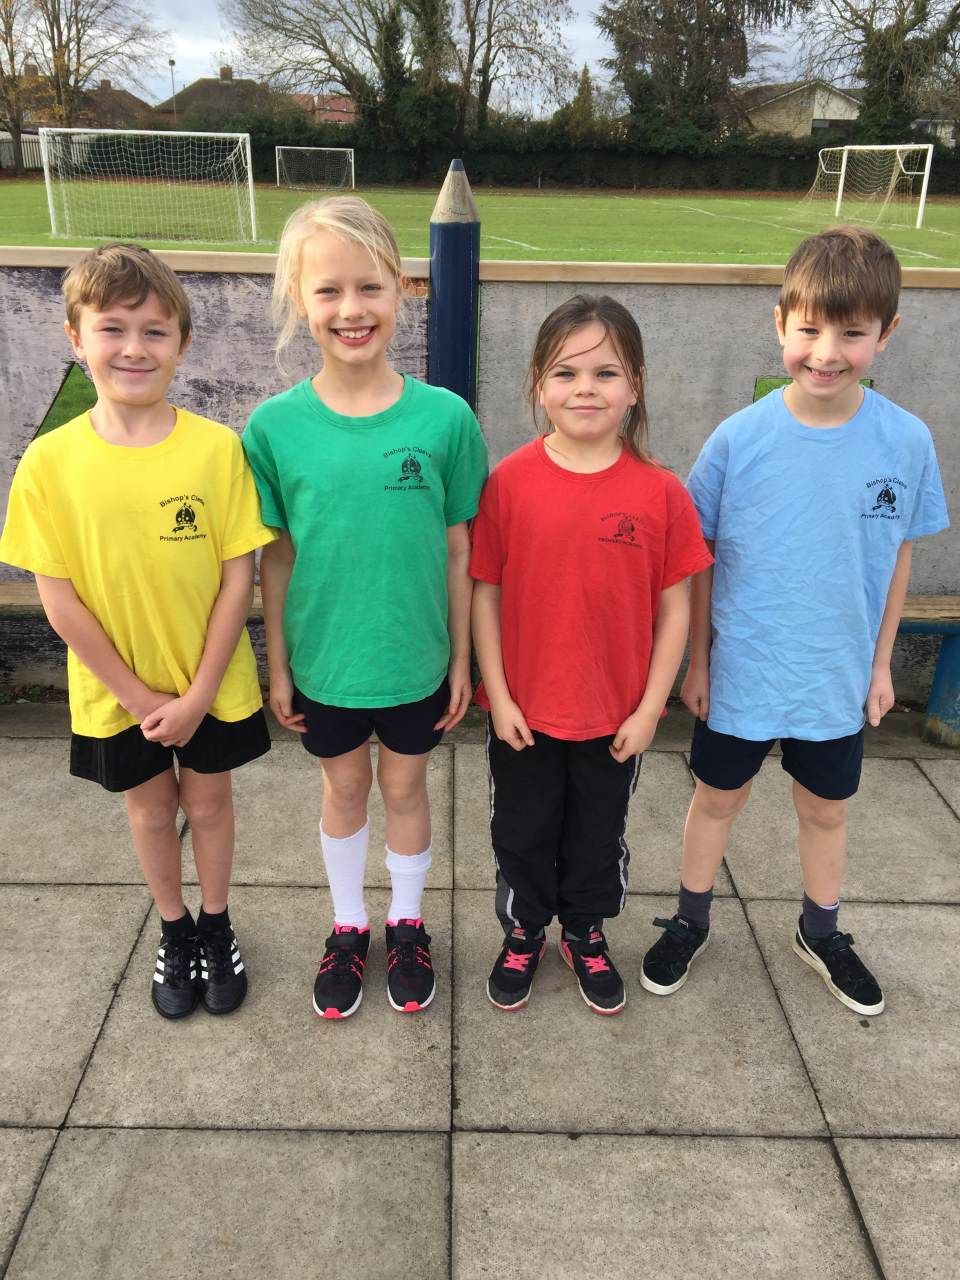 Children wearing PE kit